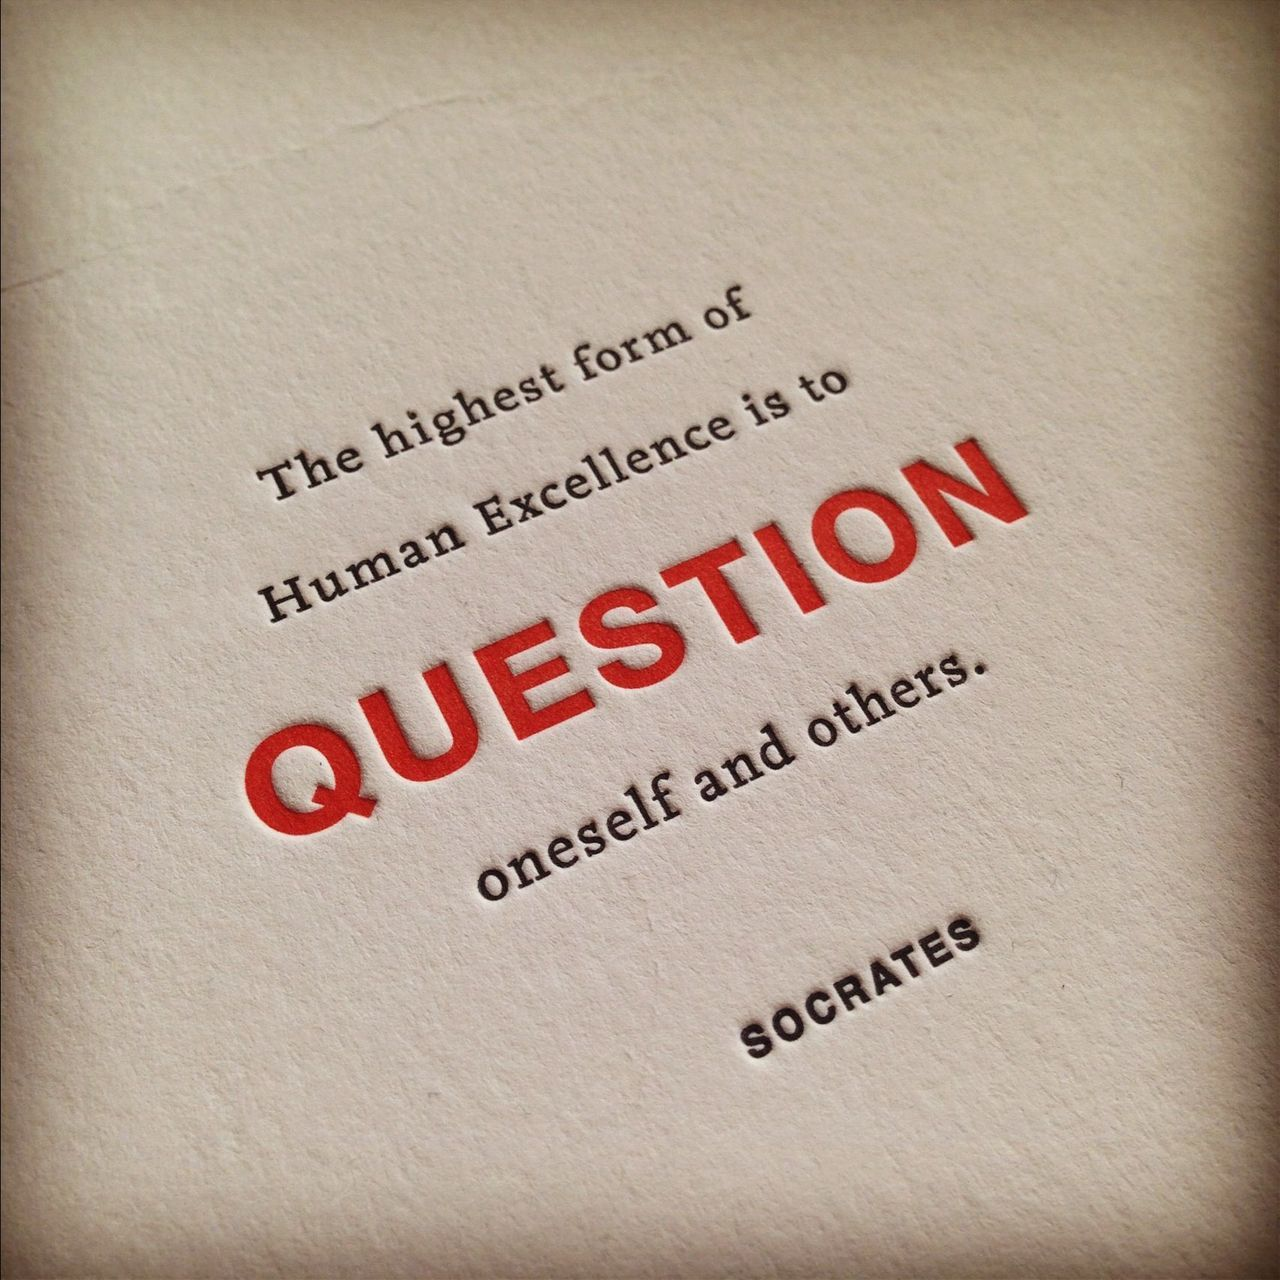 Socrates | This or that questions, Leadership quotes, Cool ...